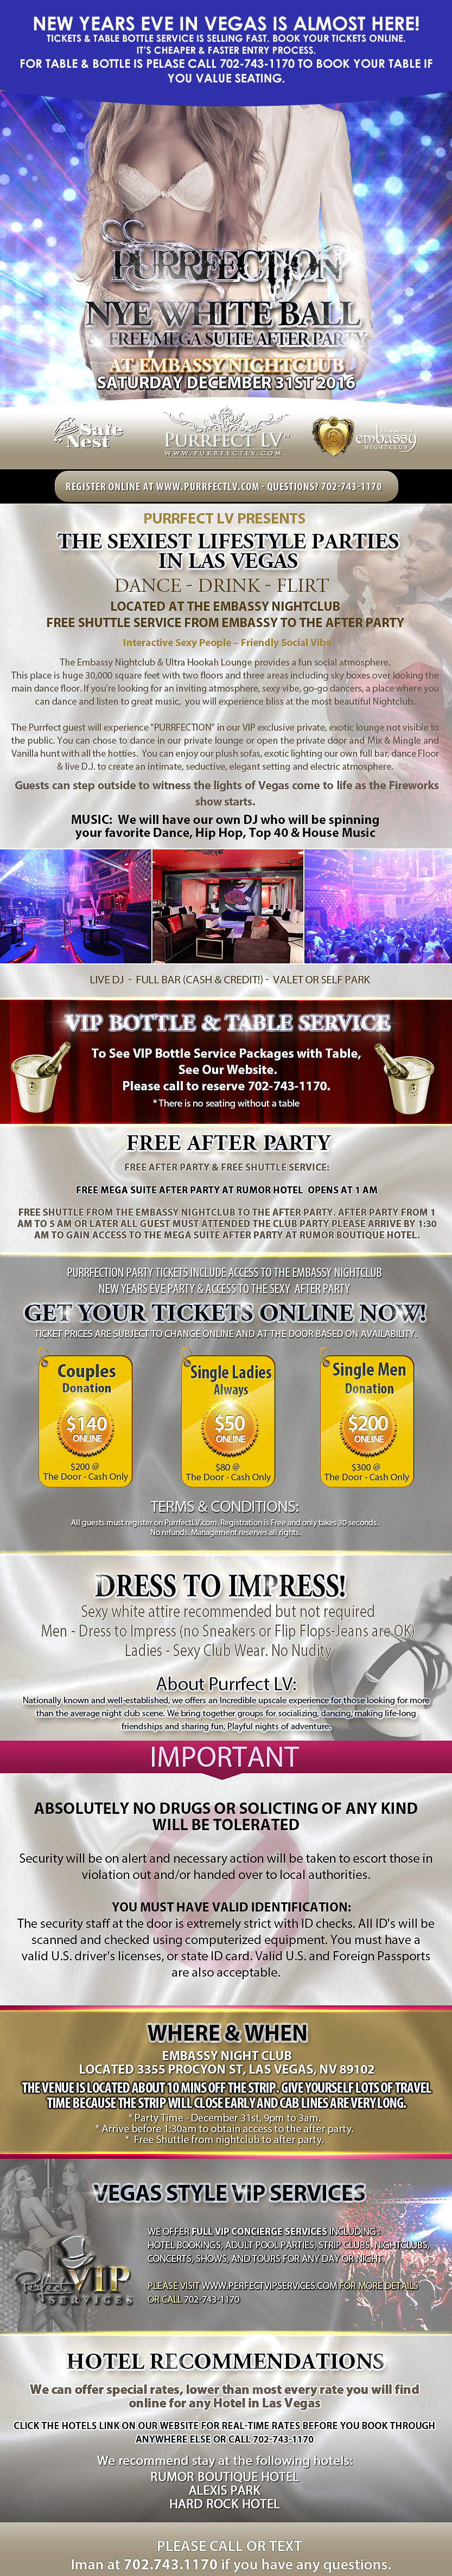 New Years Eve Party Las Vegas